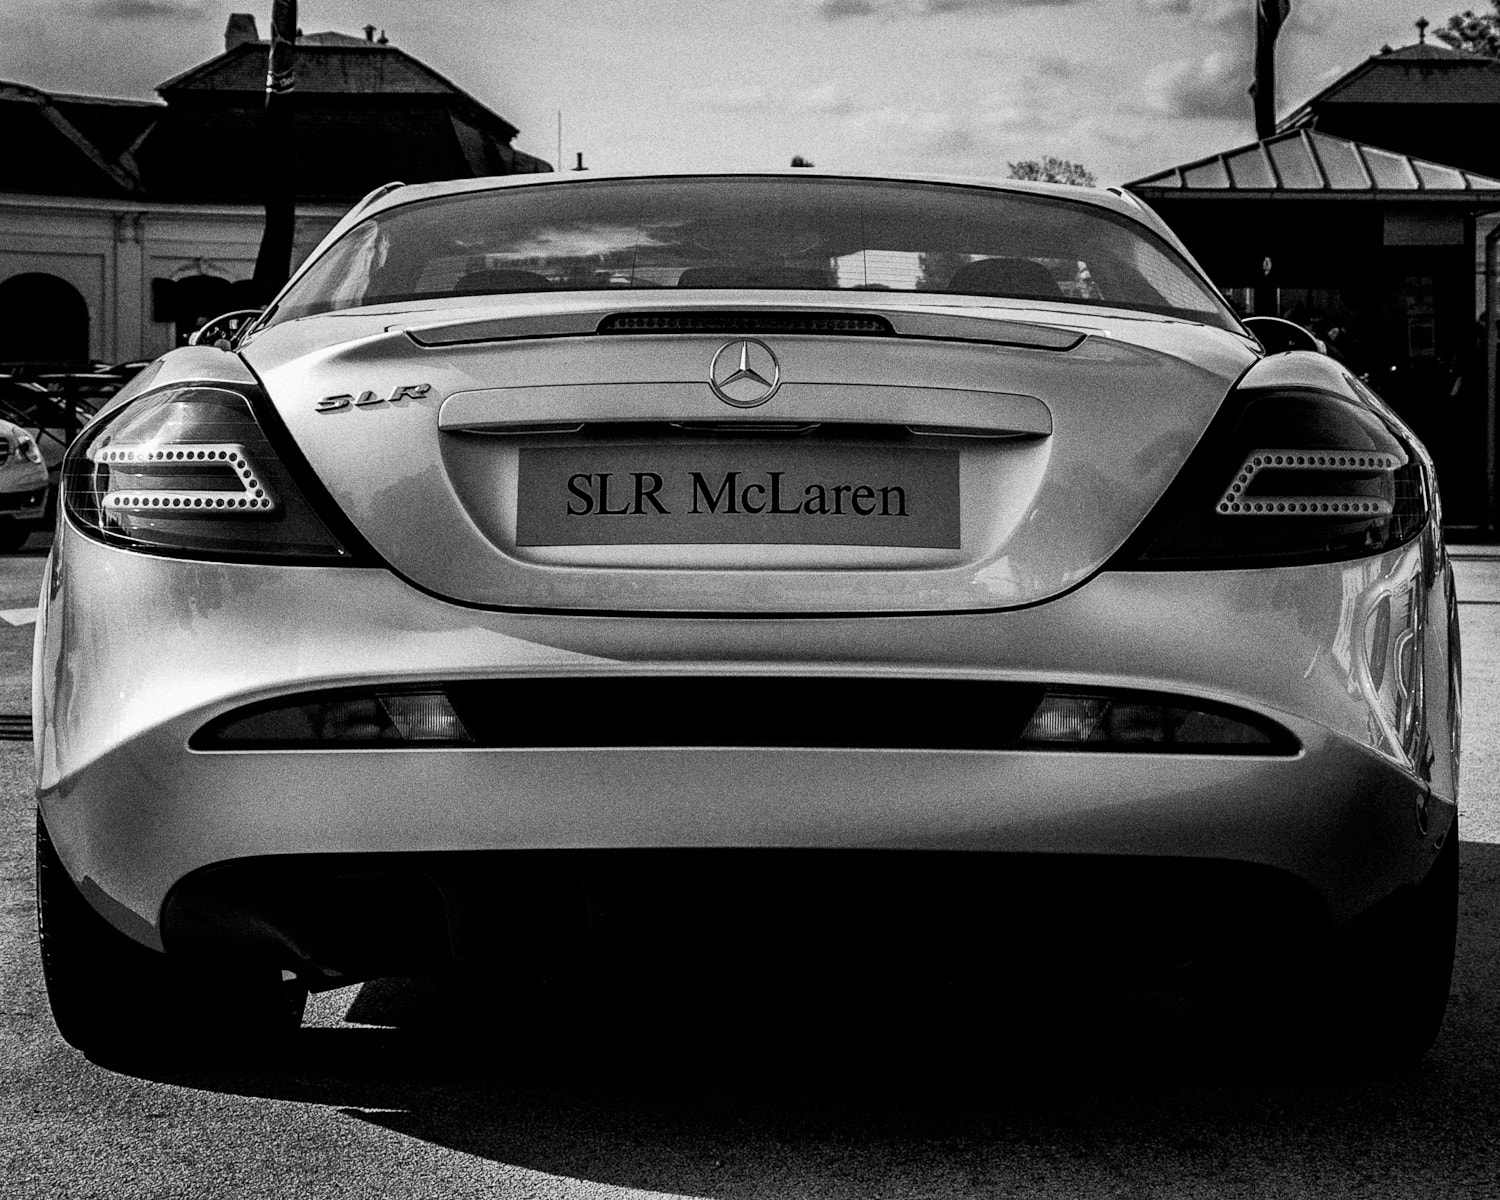 Photograph Mercedes-Benz SLR McLaren by Ernst Gamauf on 500px